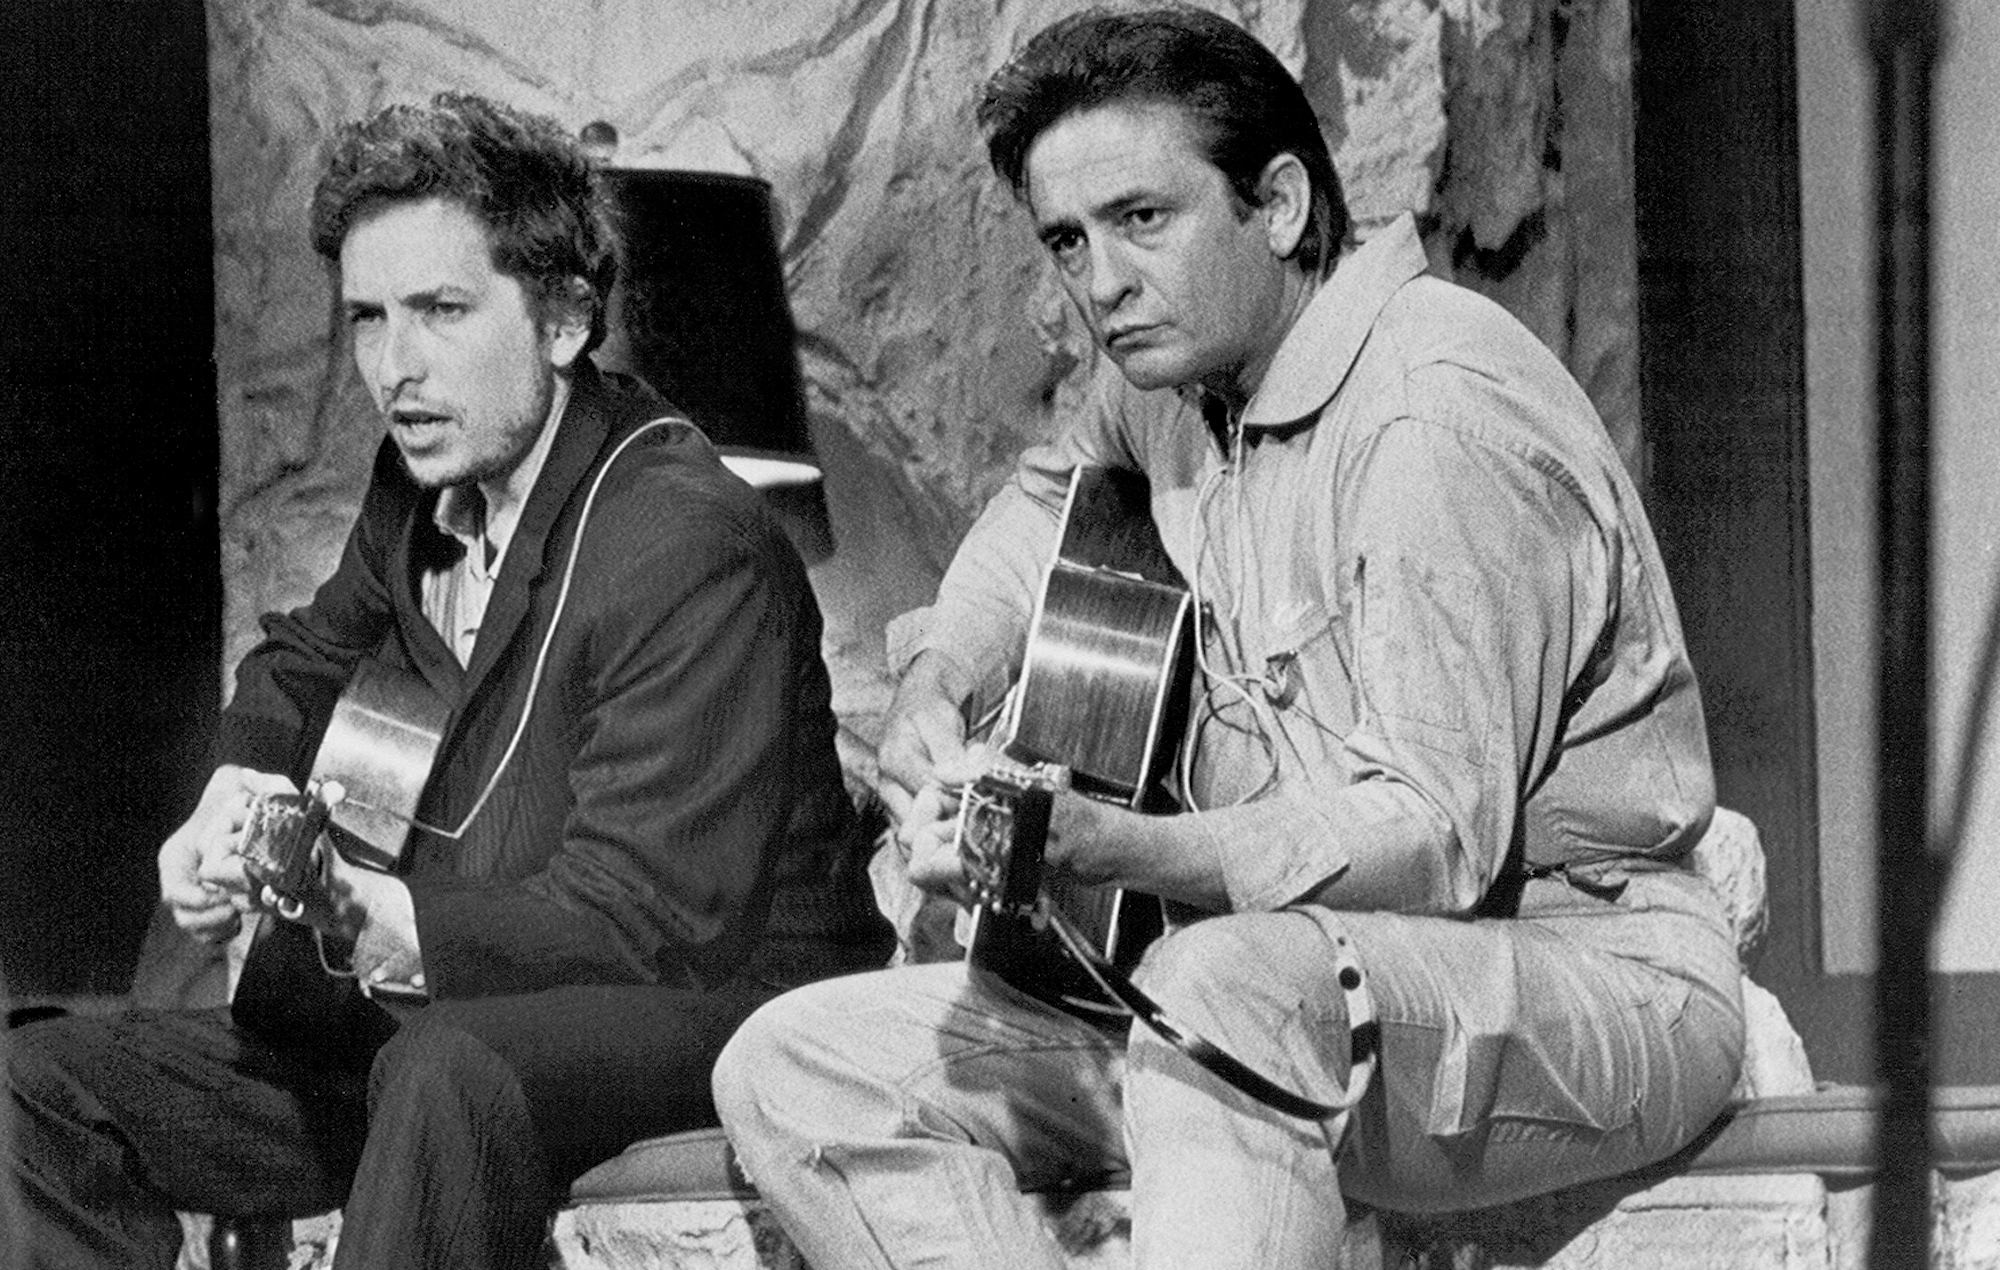 Unheard Bob Dylan and Johnny Cash sessions from 1969 to finally be released in new bootleg series